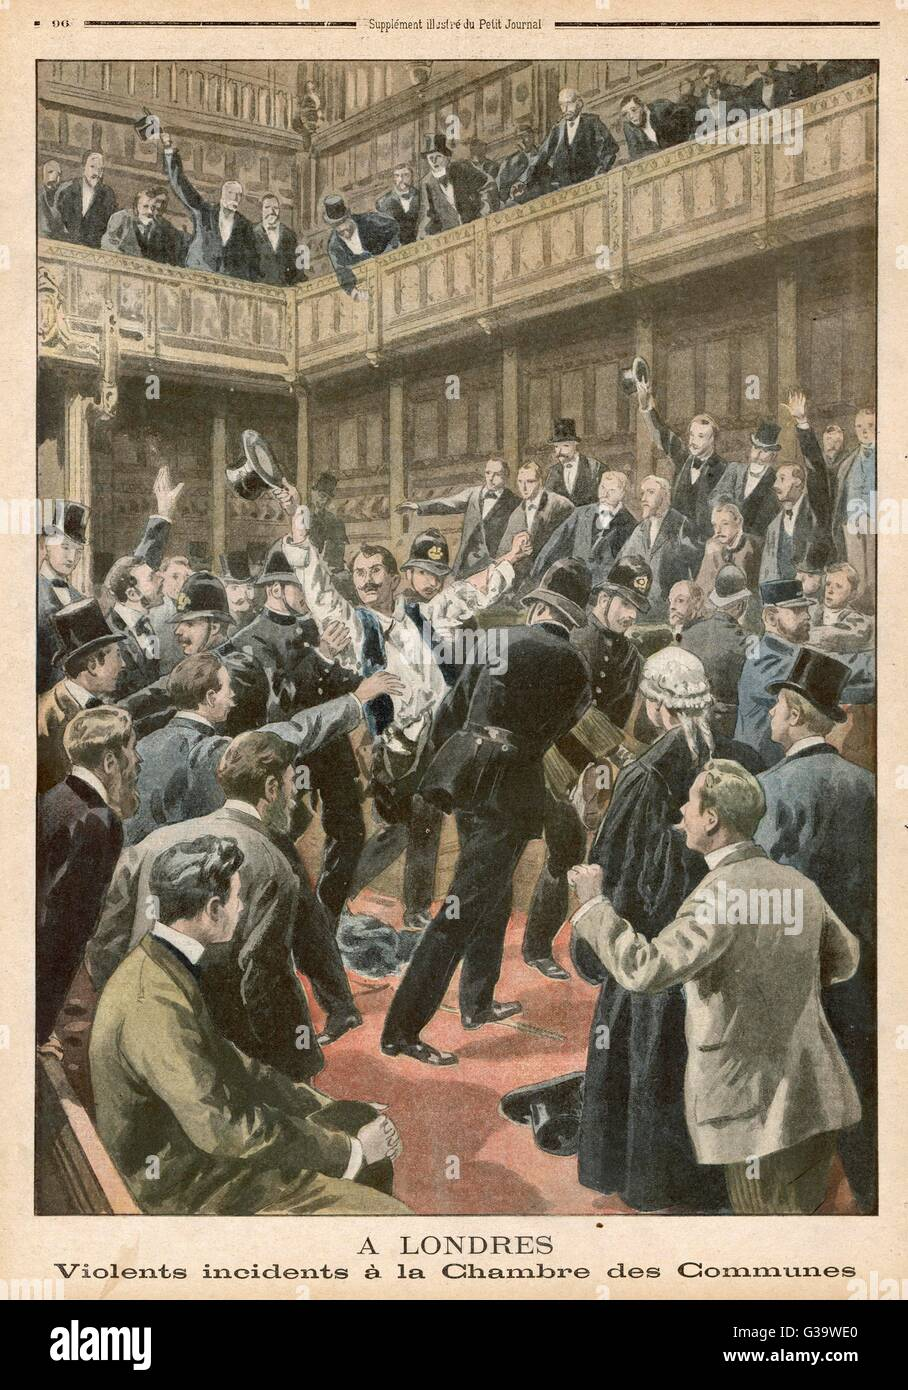 Irish MPs create a disturbance  in the House of Commons in  London.        Date: 1901 - Stock Image